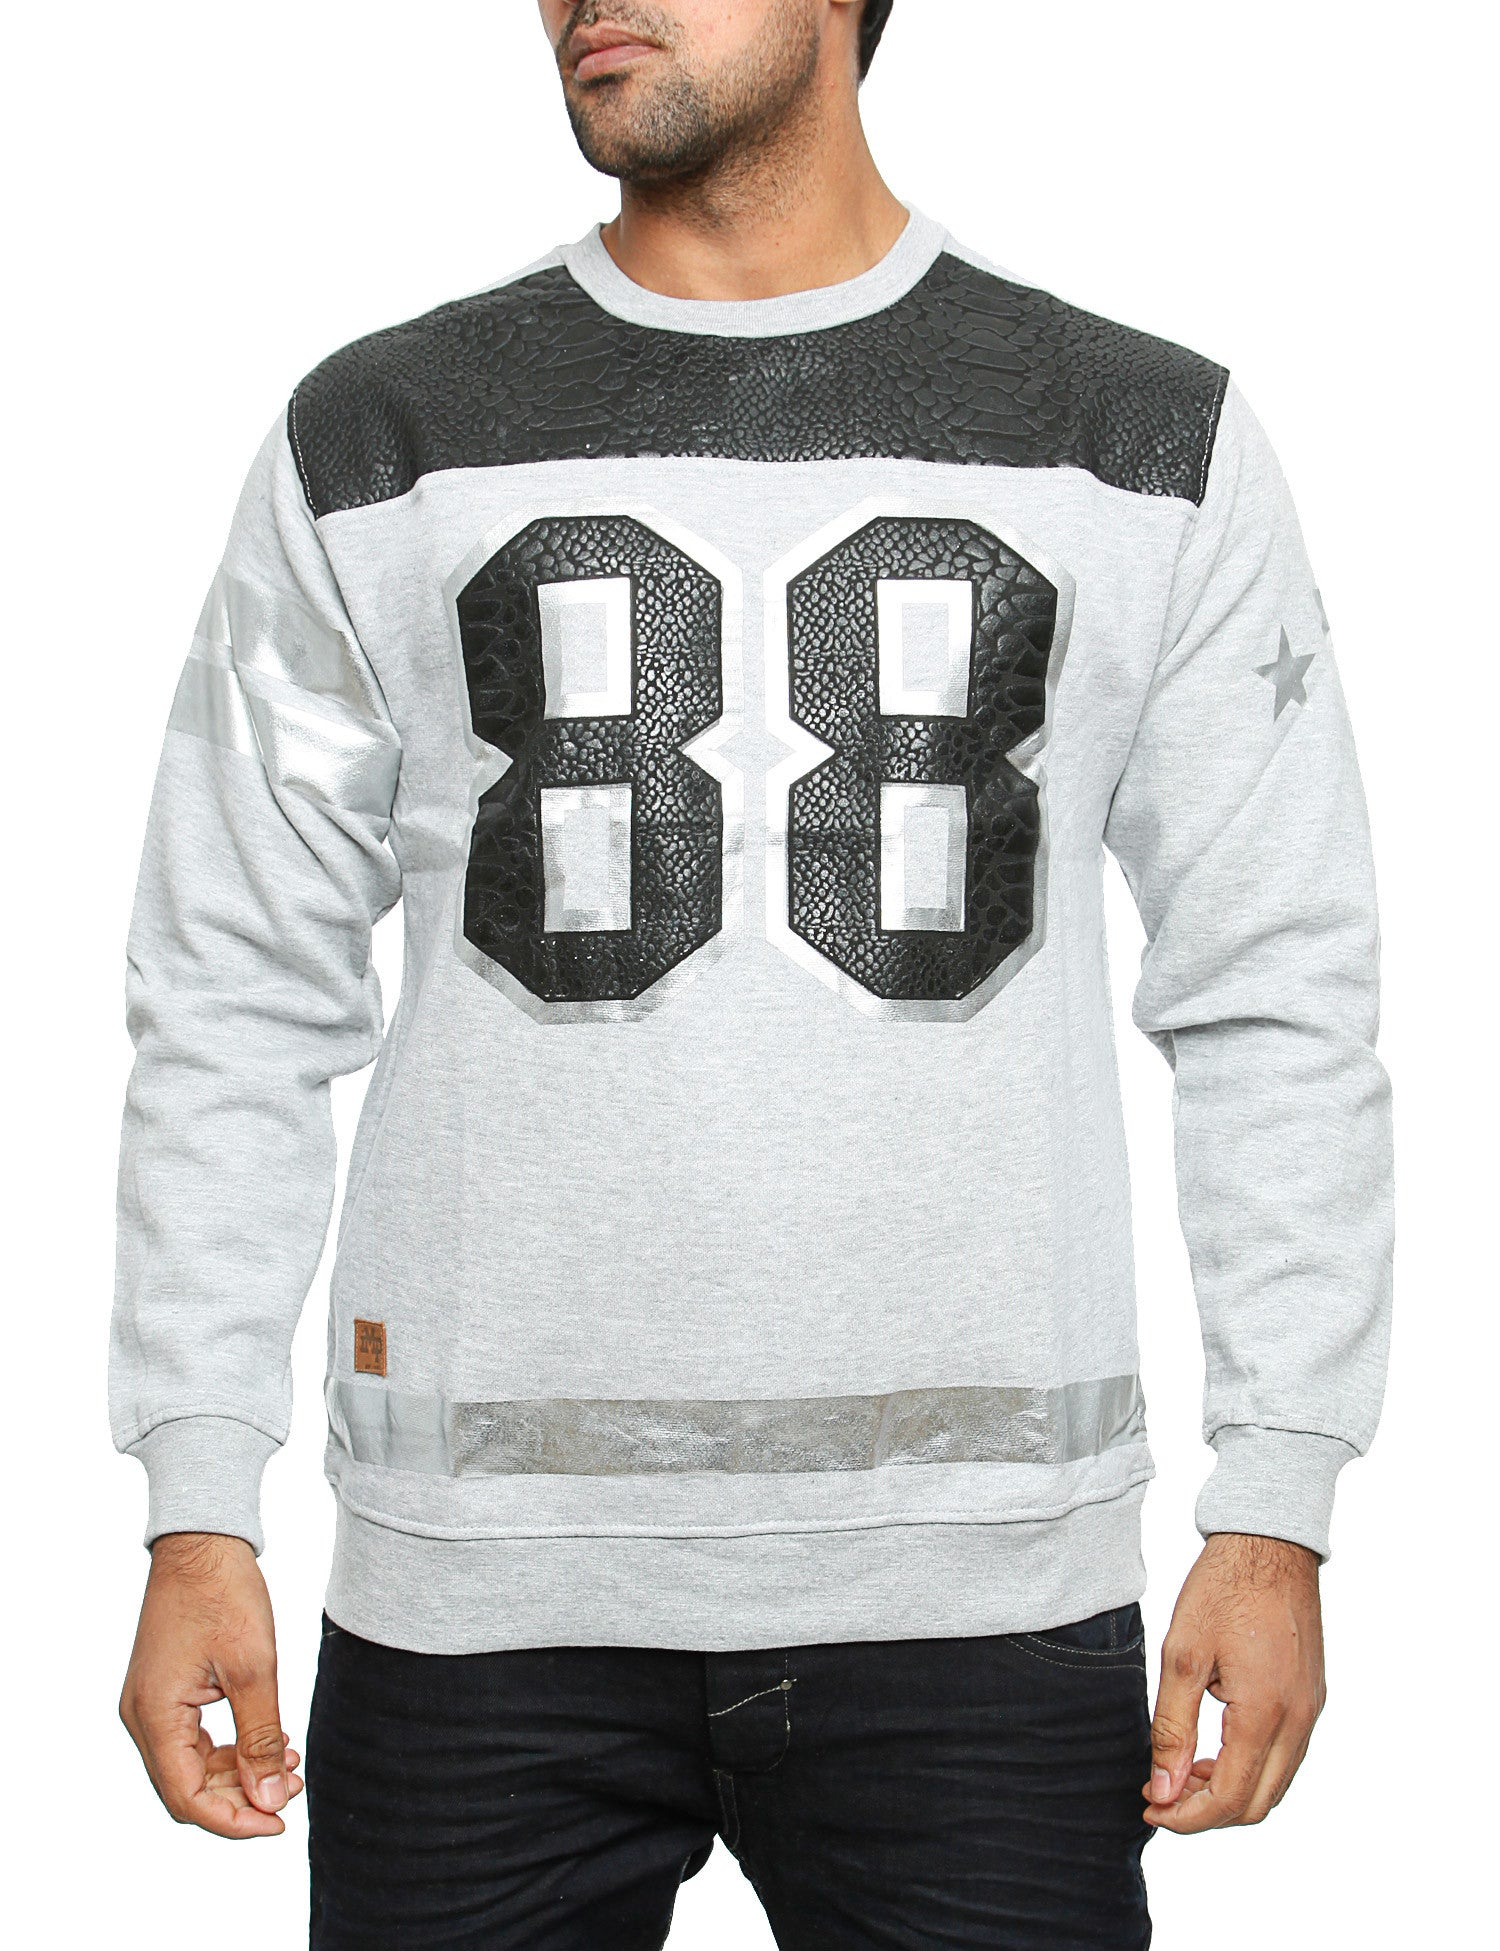 Imperious 88 Crewneck Sweatshirt Grey